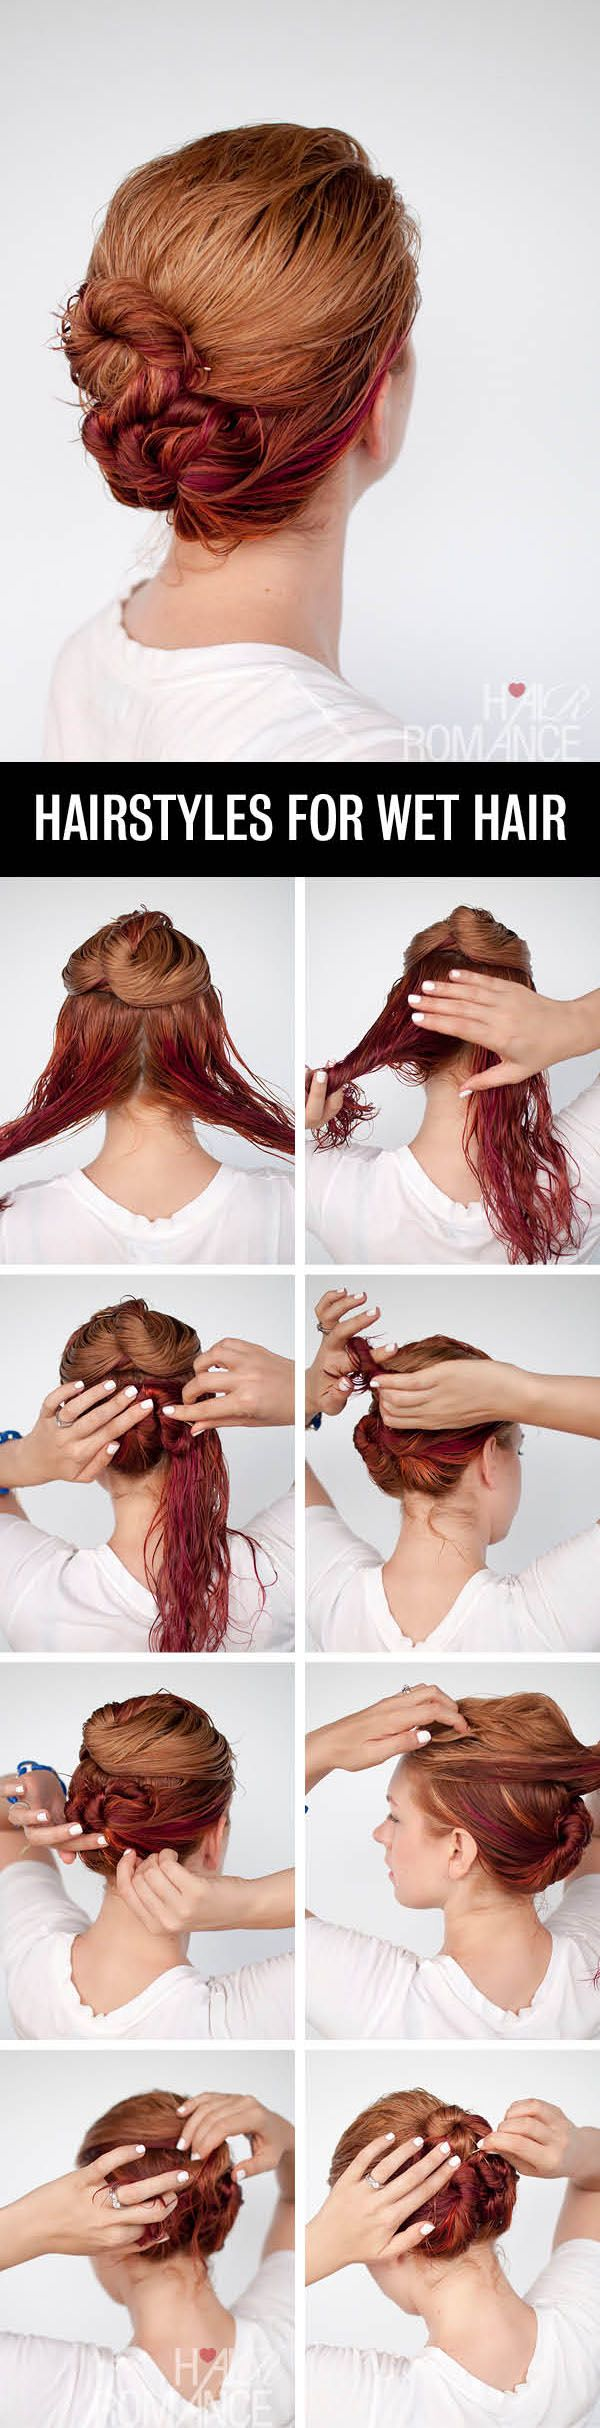 Get ready fast with easy hairstyle tutorials for wet hair blow